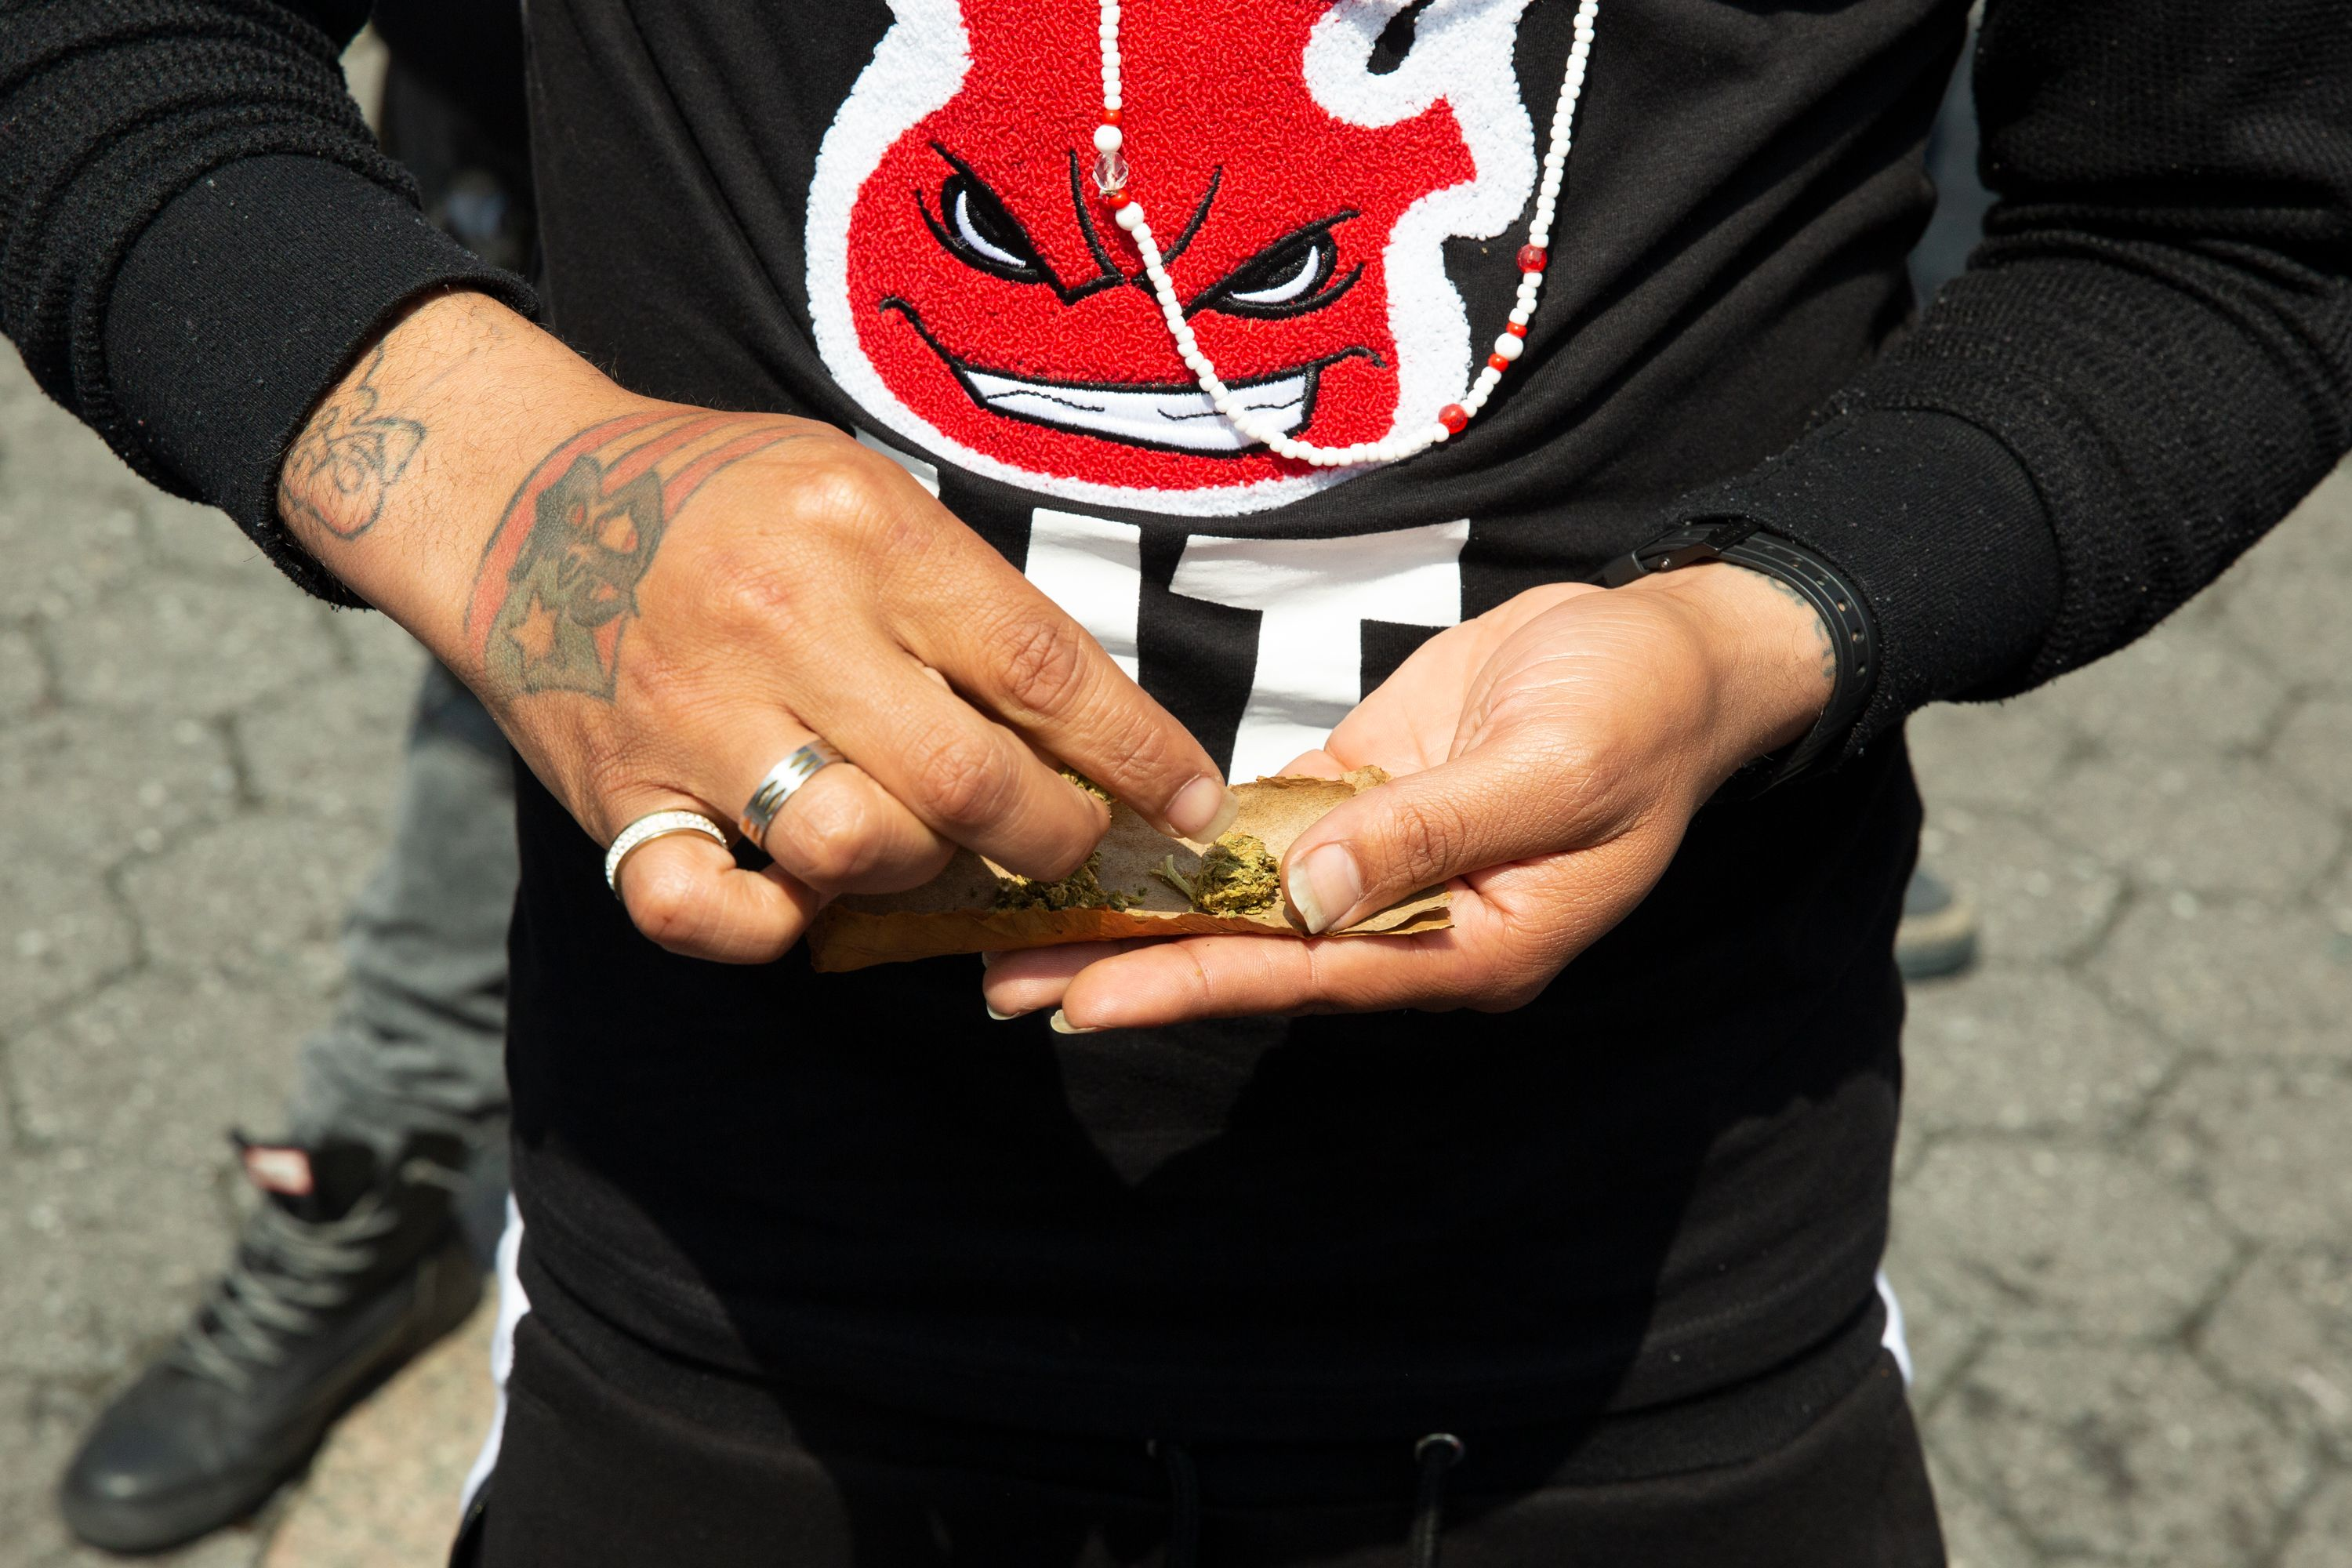 A smoker rolls a joint in Union Square during a rally advocating the legalization of recreational marijuana use, May 4, 2019.